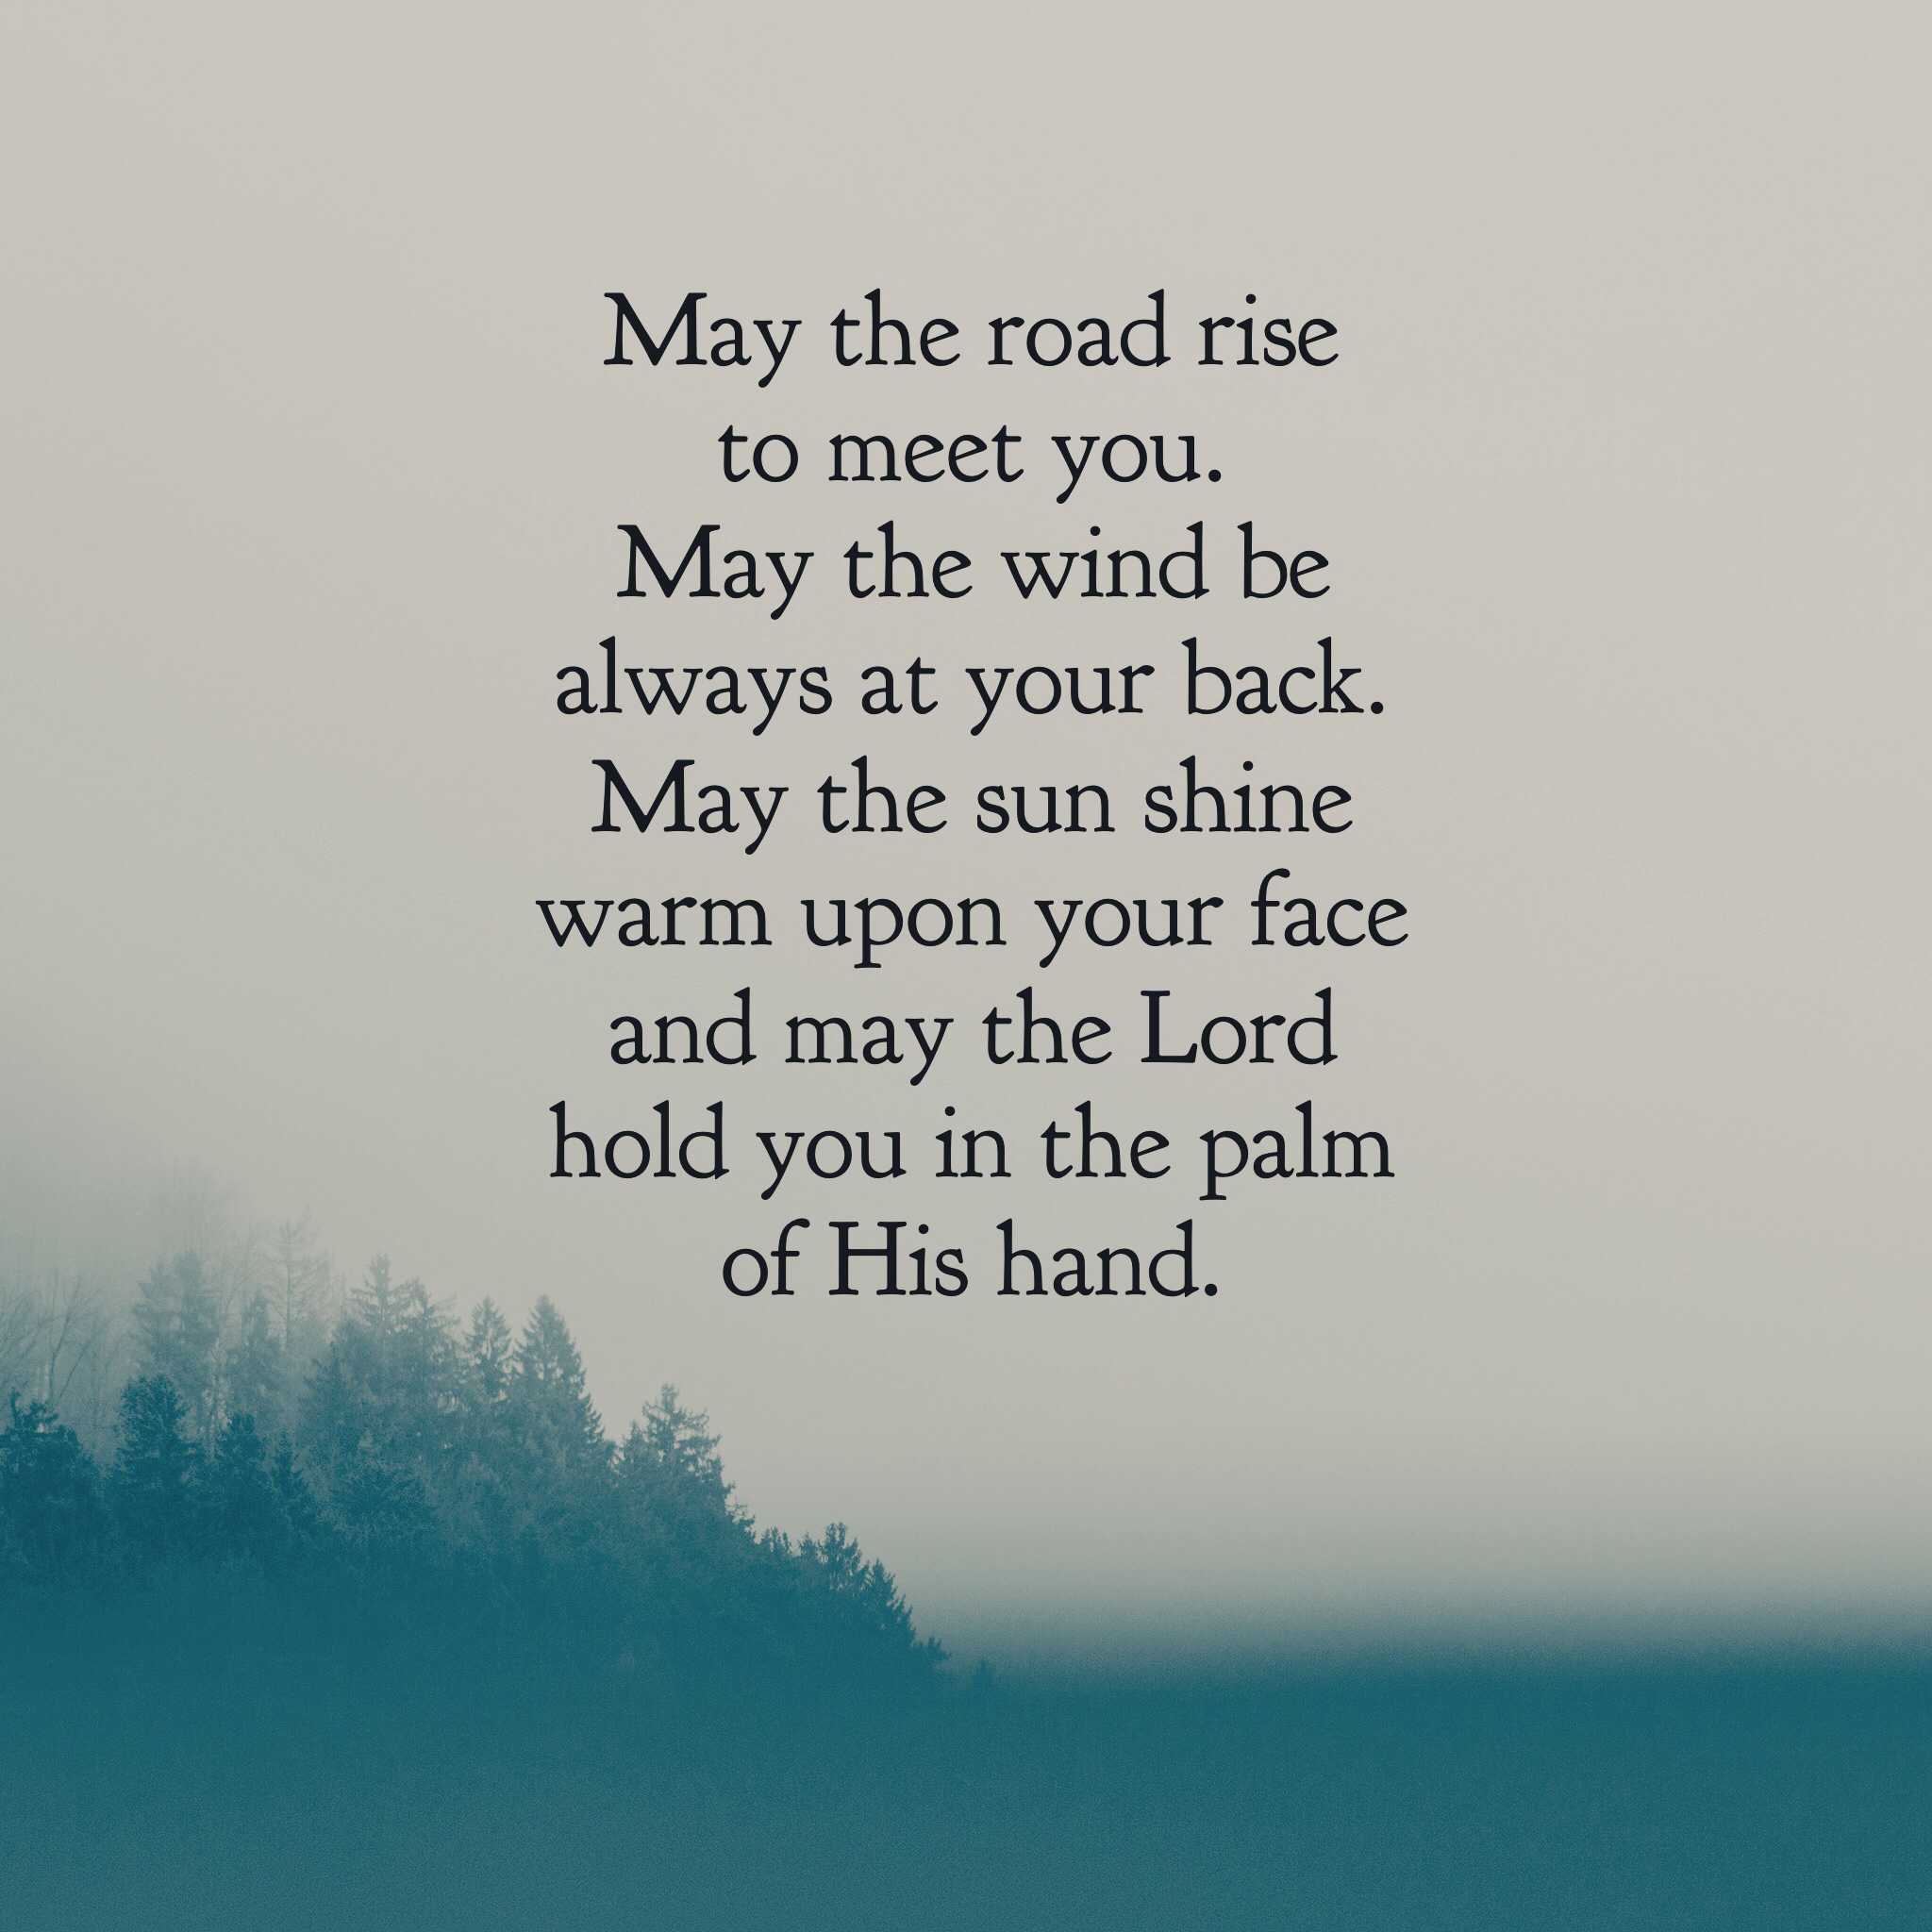 May the road rise to meet you… (an Irish blessing) – Mary C. M. Phillips